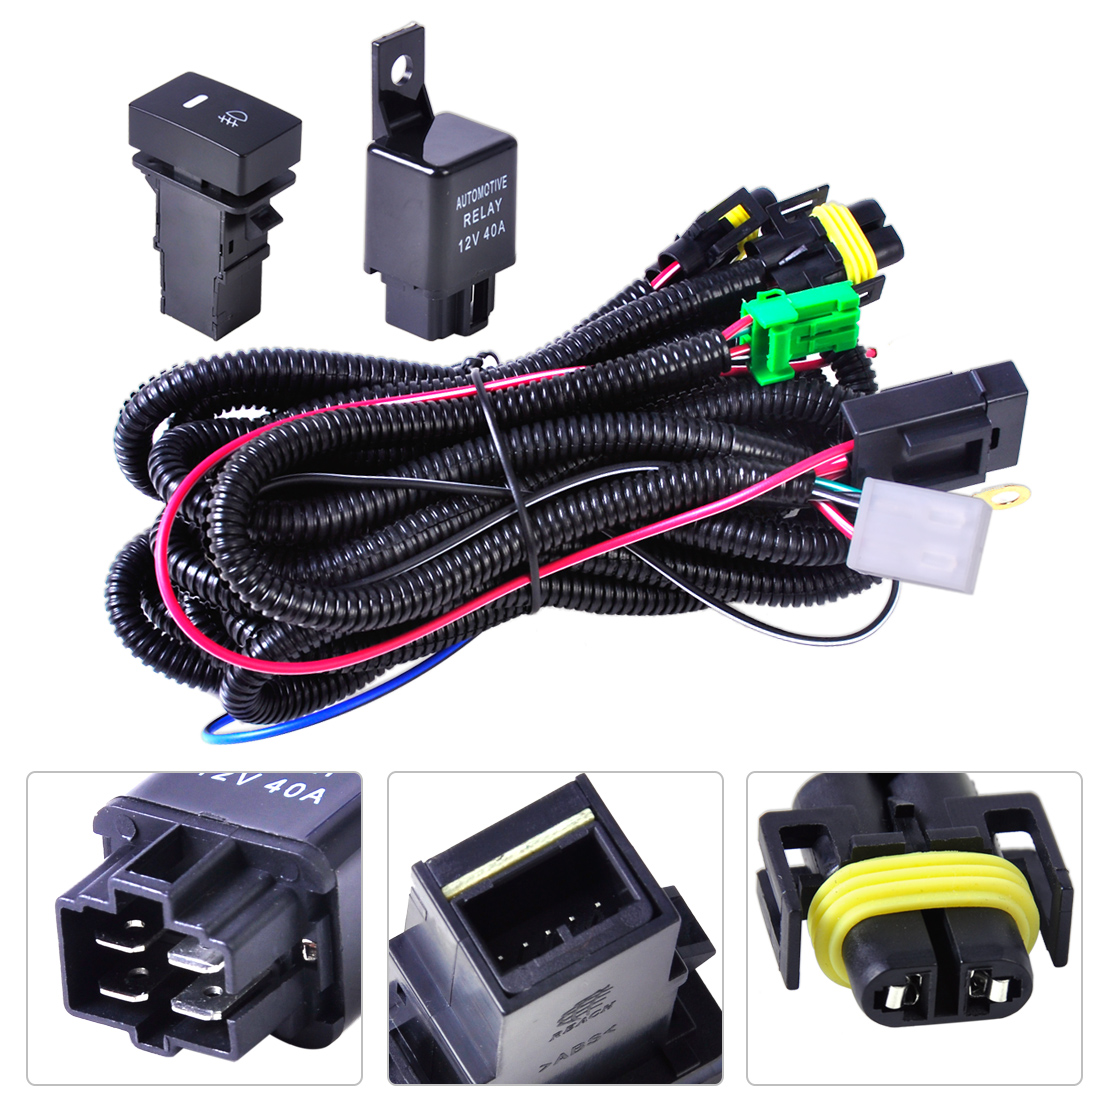 dwcx wiring harness sockets wire switch for h11 fog light. Black Bedroom Furniture Sets. Home Design Ideas